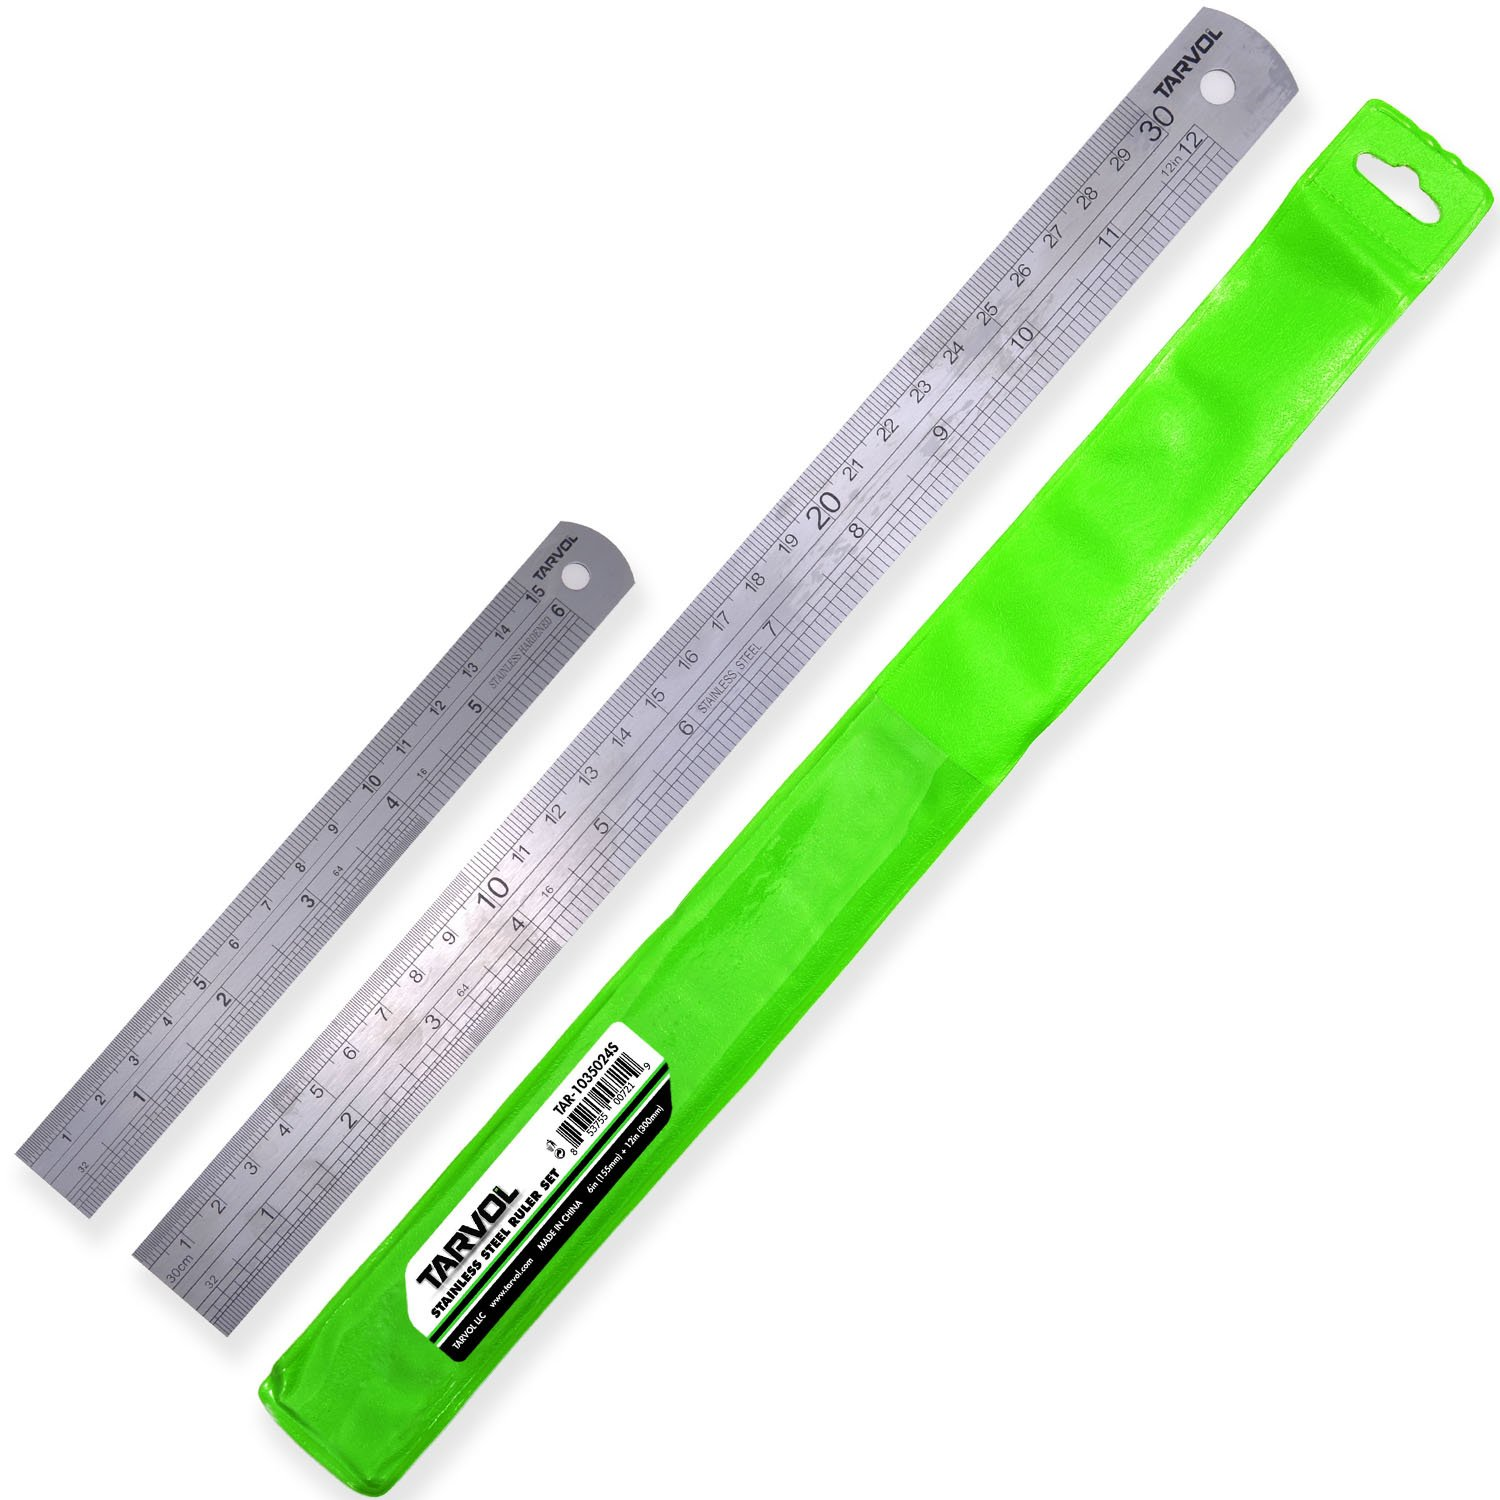 """12""""& 6"""" Metal Ruler Set (HEAVY DUTY 100% STAINLESS STEEL) 2 Piece Set - 12 Inch (30 CM) Ruler with 6 Inch (15 CM) Ruler in Convenient Storage Case - Perfect Straight Edge For Easy Measurements"""